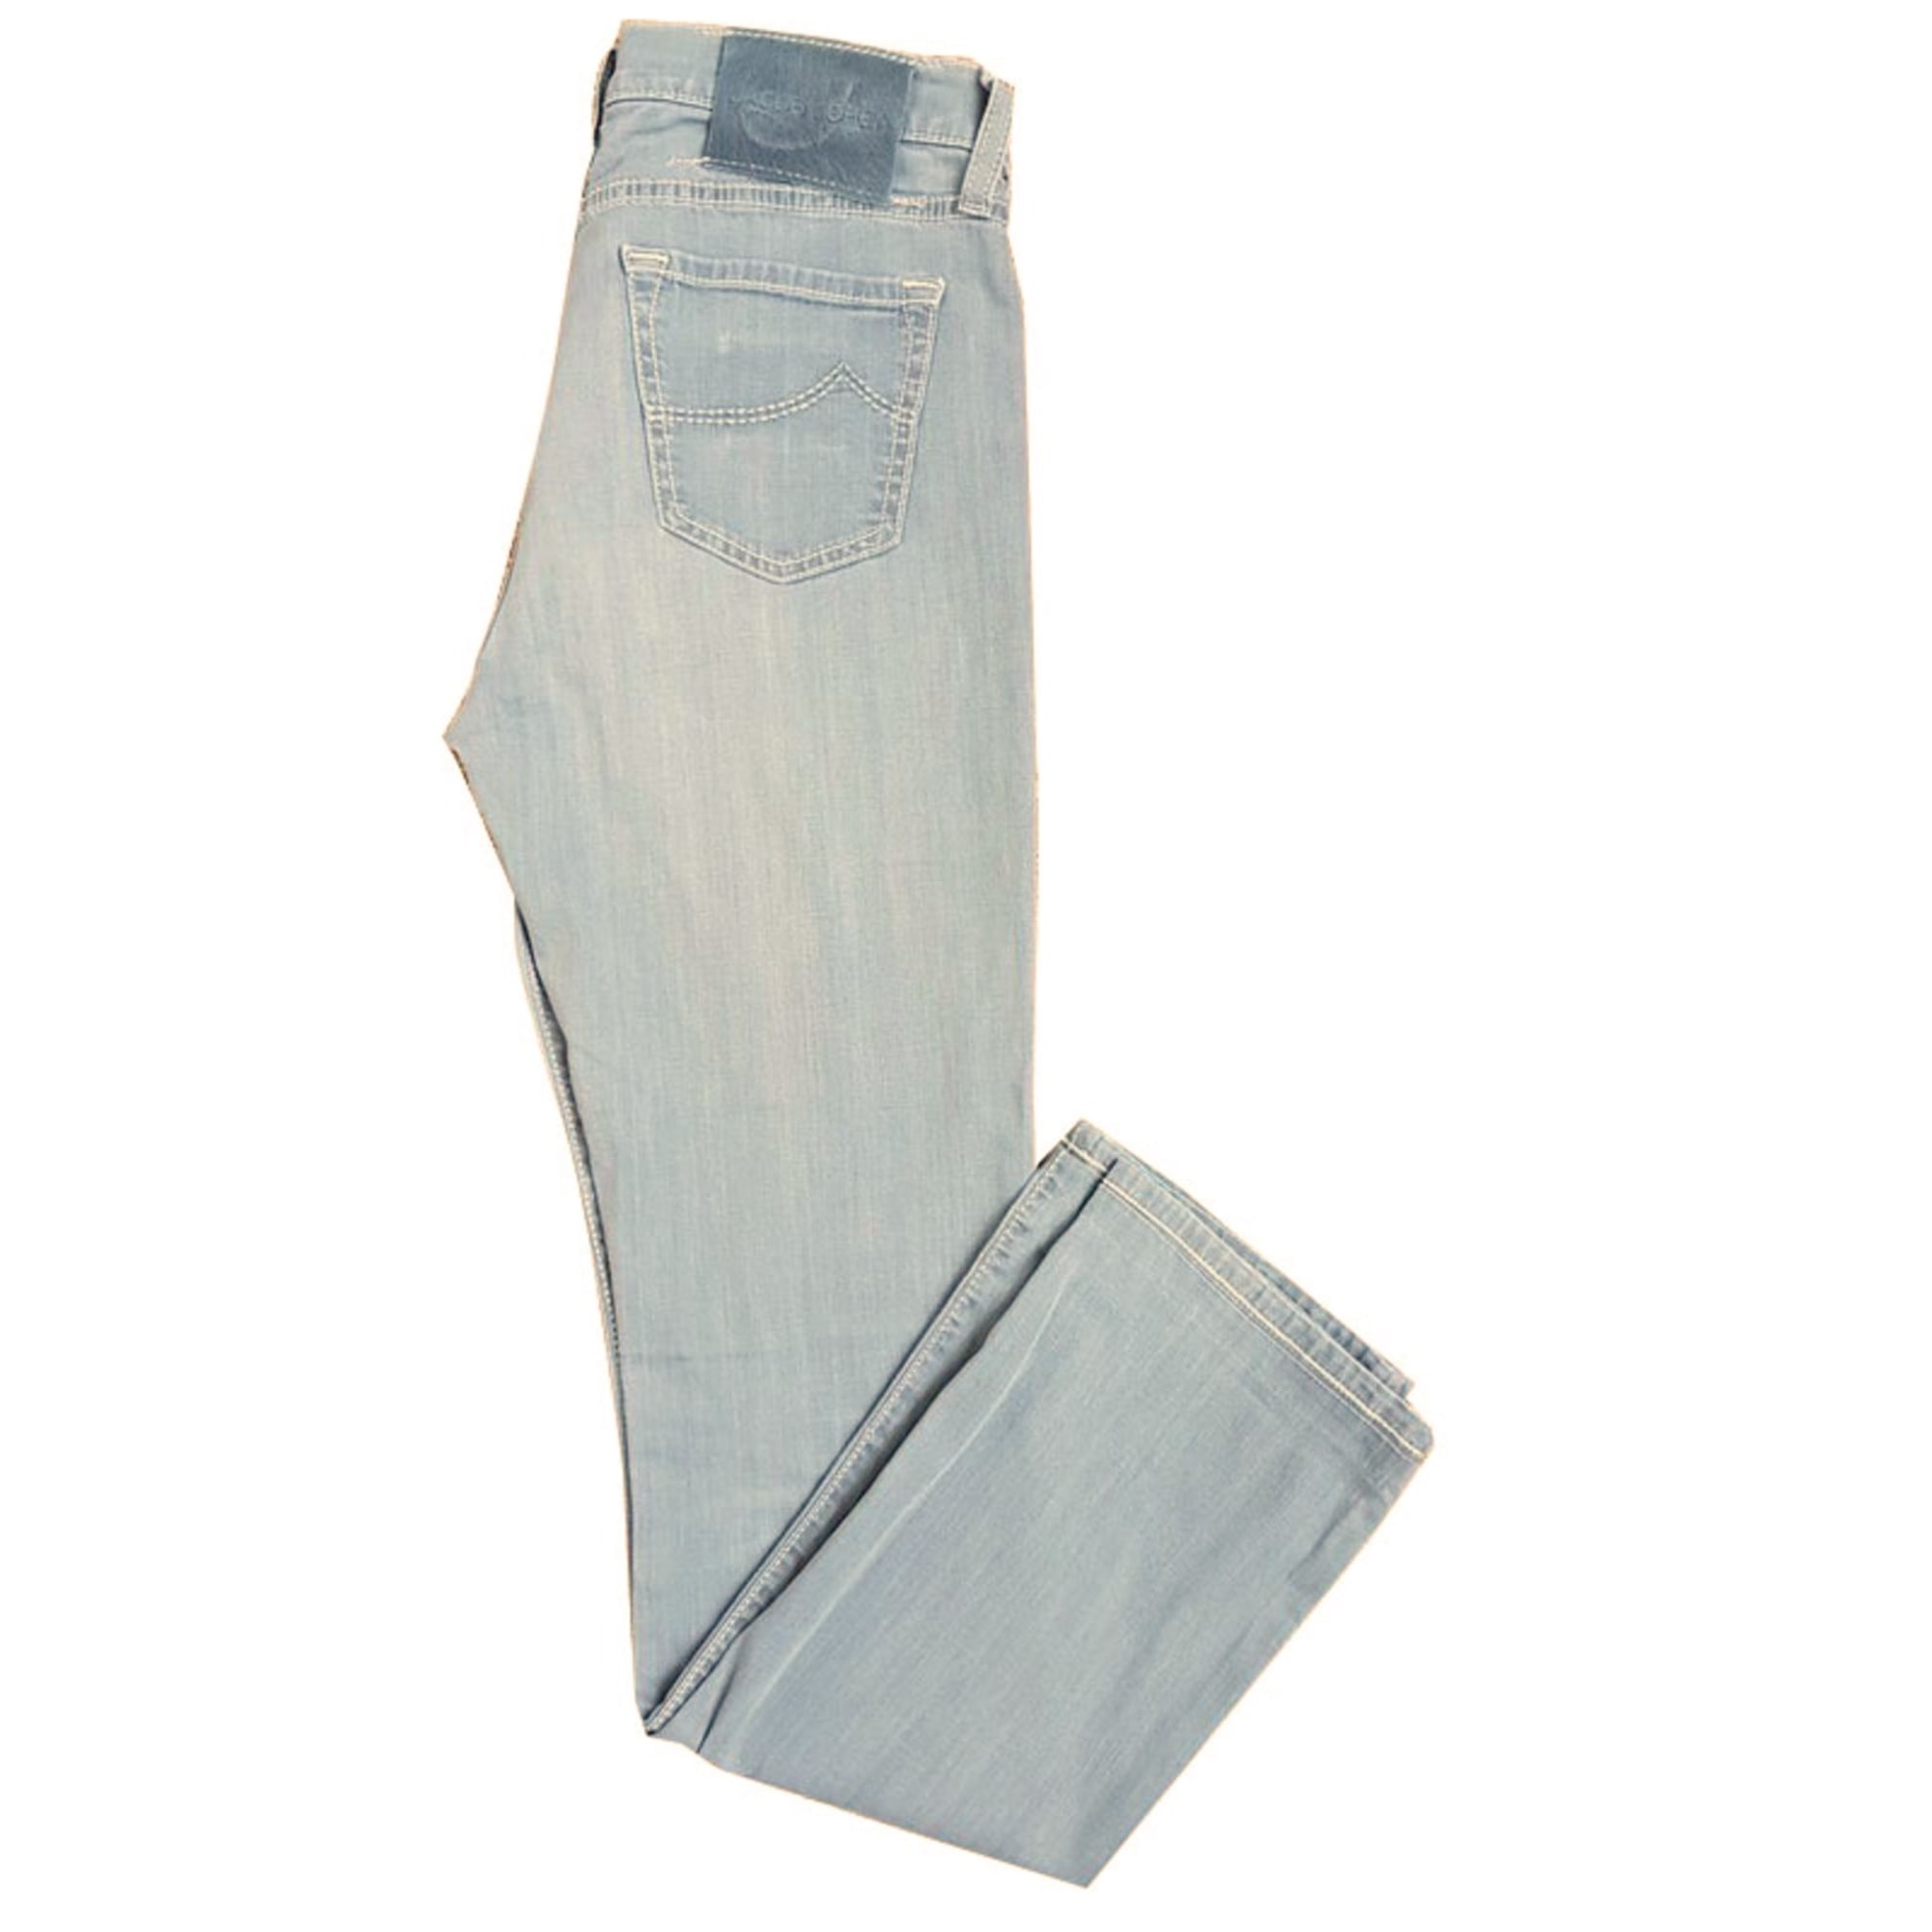 Jeans droit JACOB COHEN Gris, anthracite